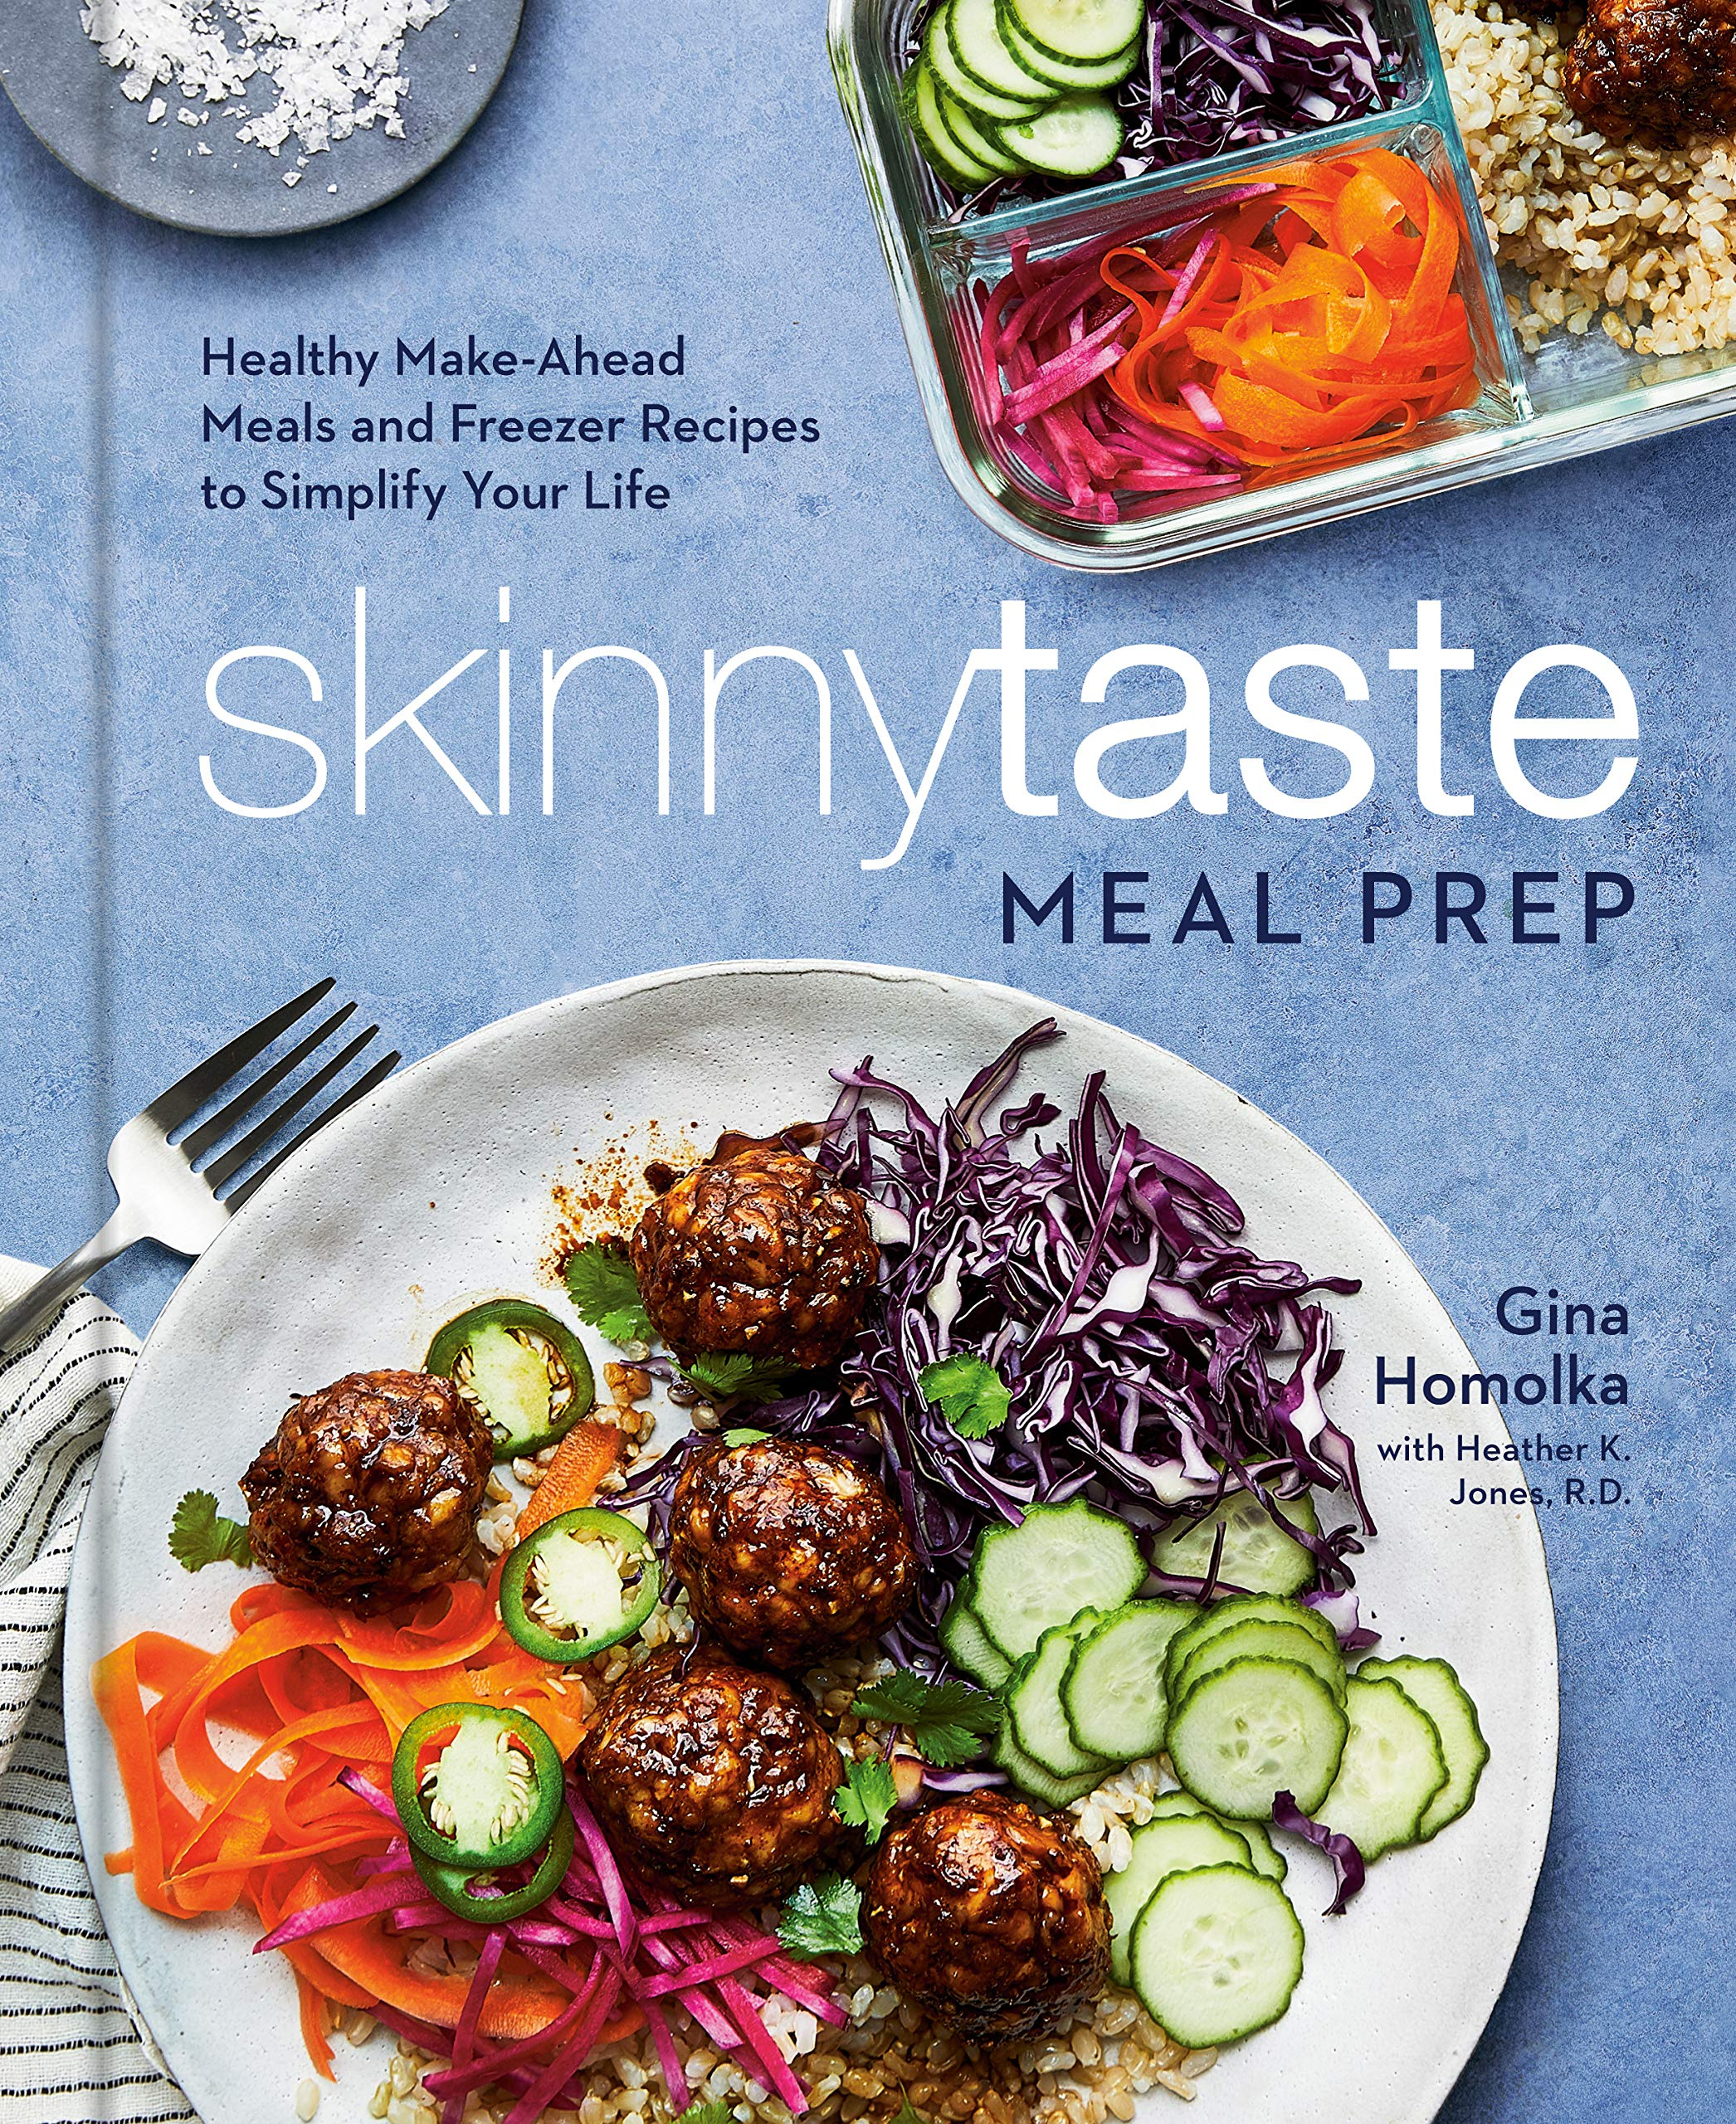 Skinnytaste Meal Prep: Healthy Make-Ahead Meals and Freezer Recipes to Simplify Your Life by Gina Homolka